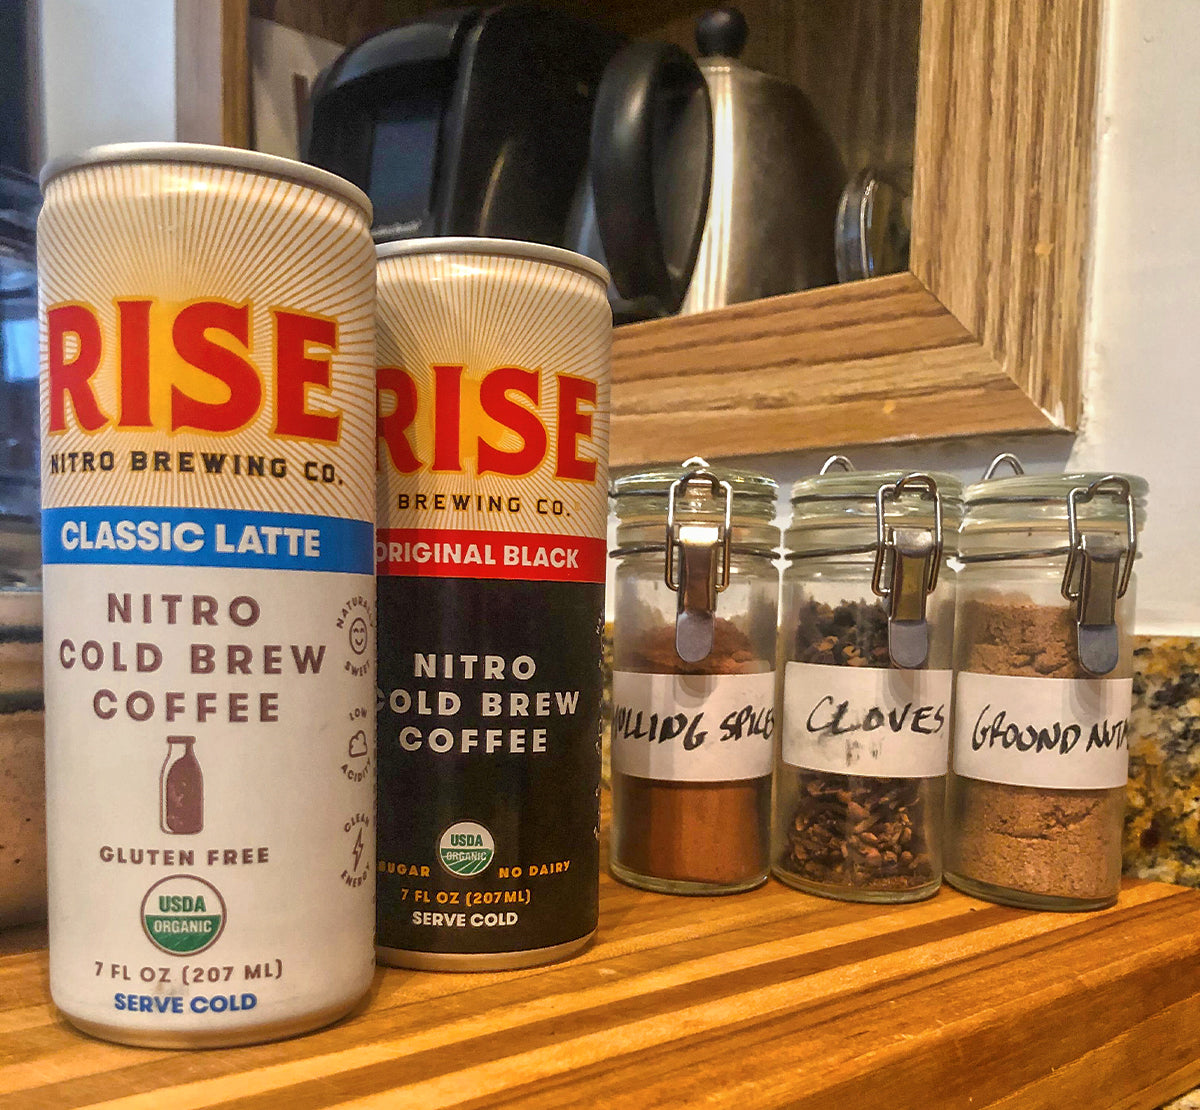 Rise-cooking-spice-ingredients-oats-fall-drink-tasty-nitro-cold-brew-coffee-rise